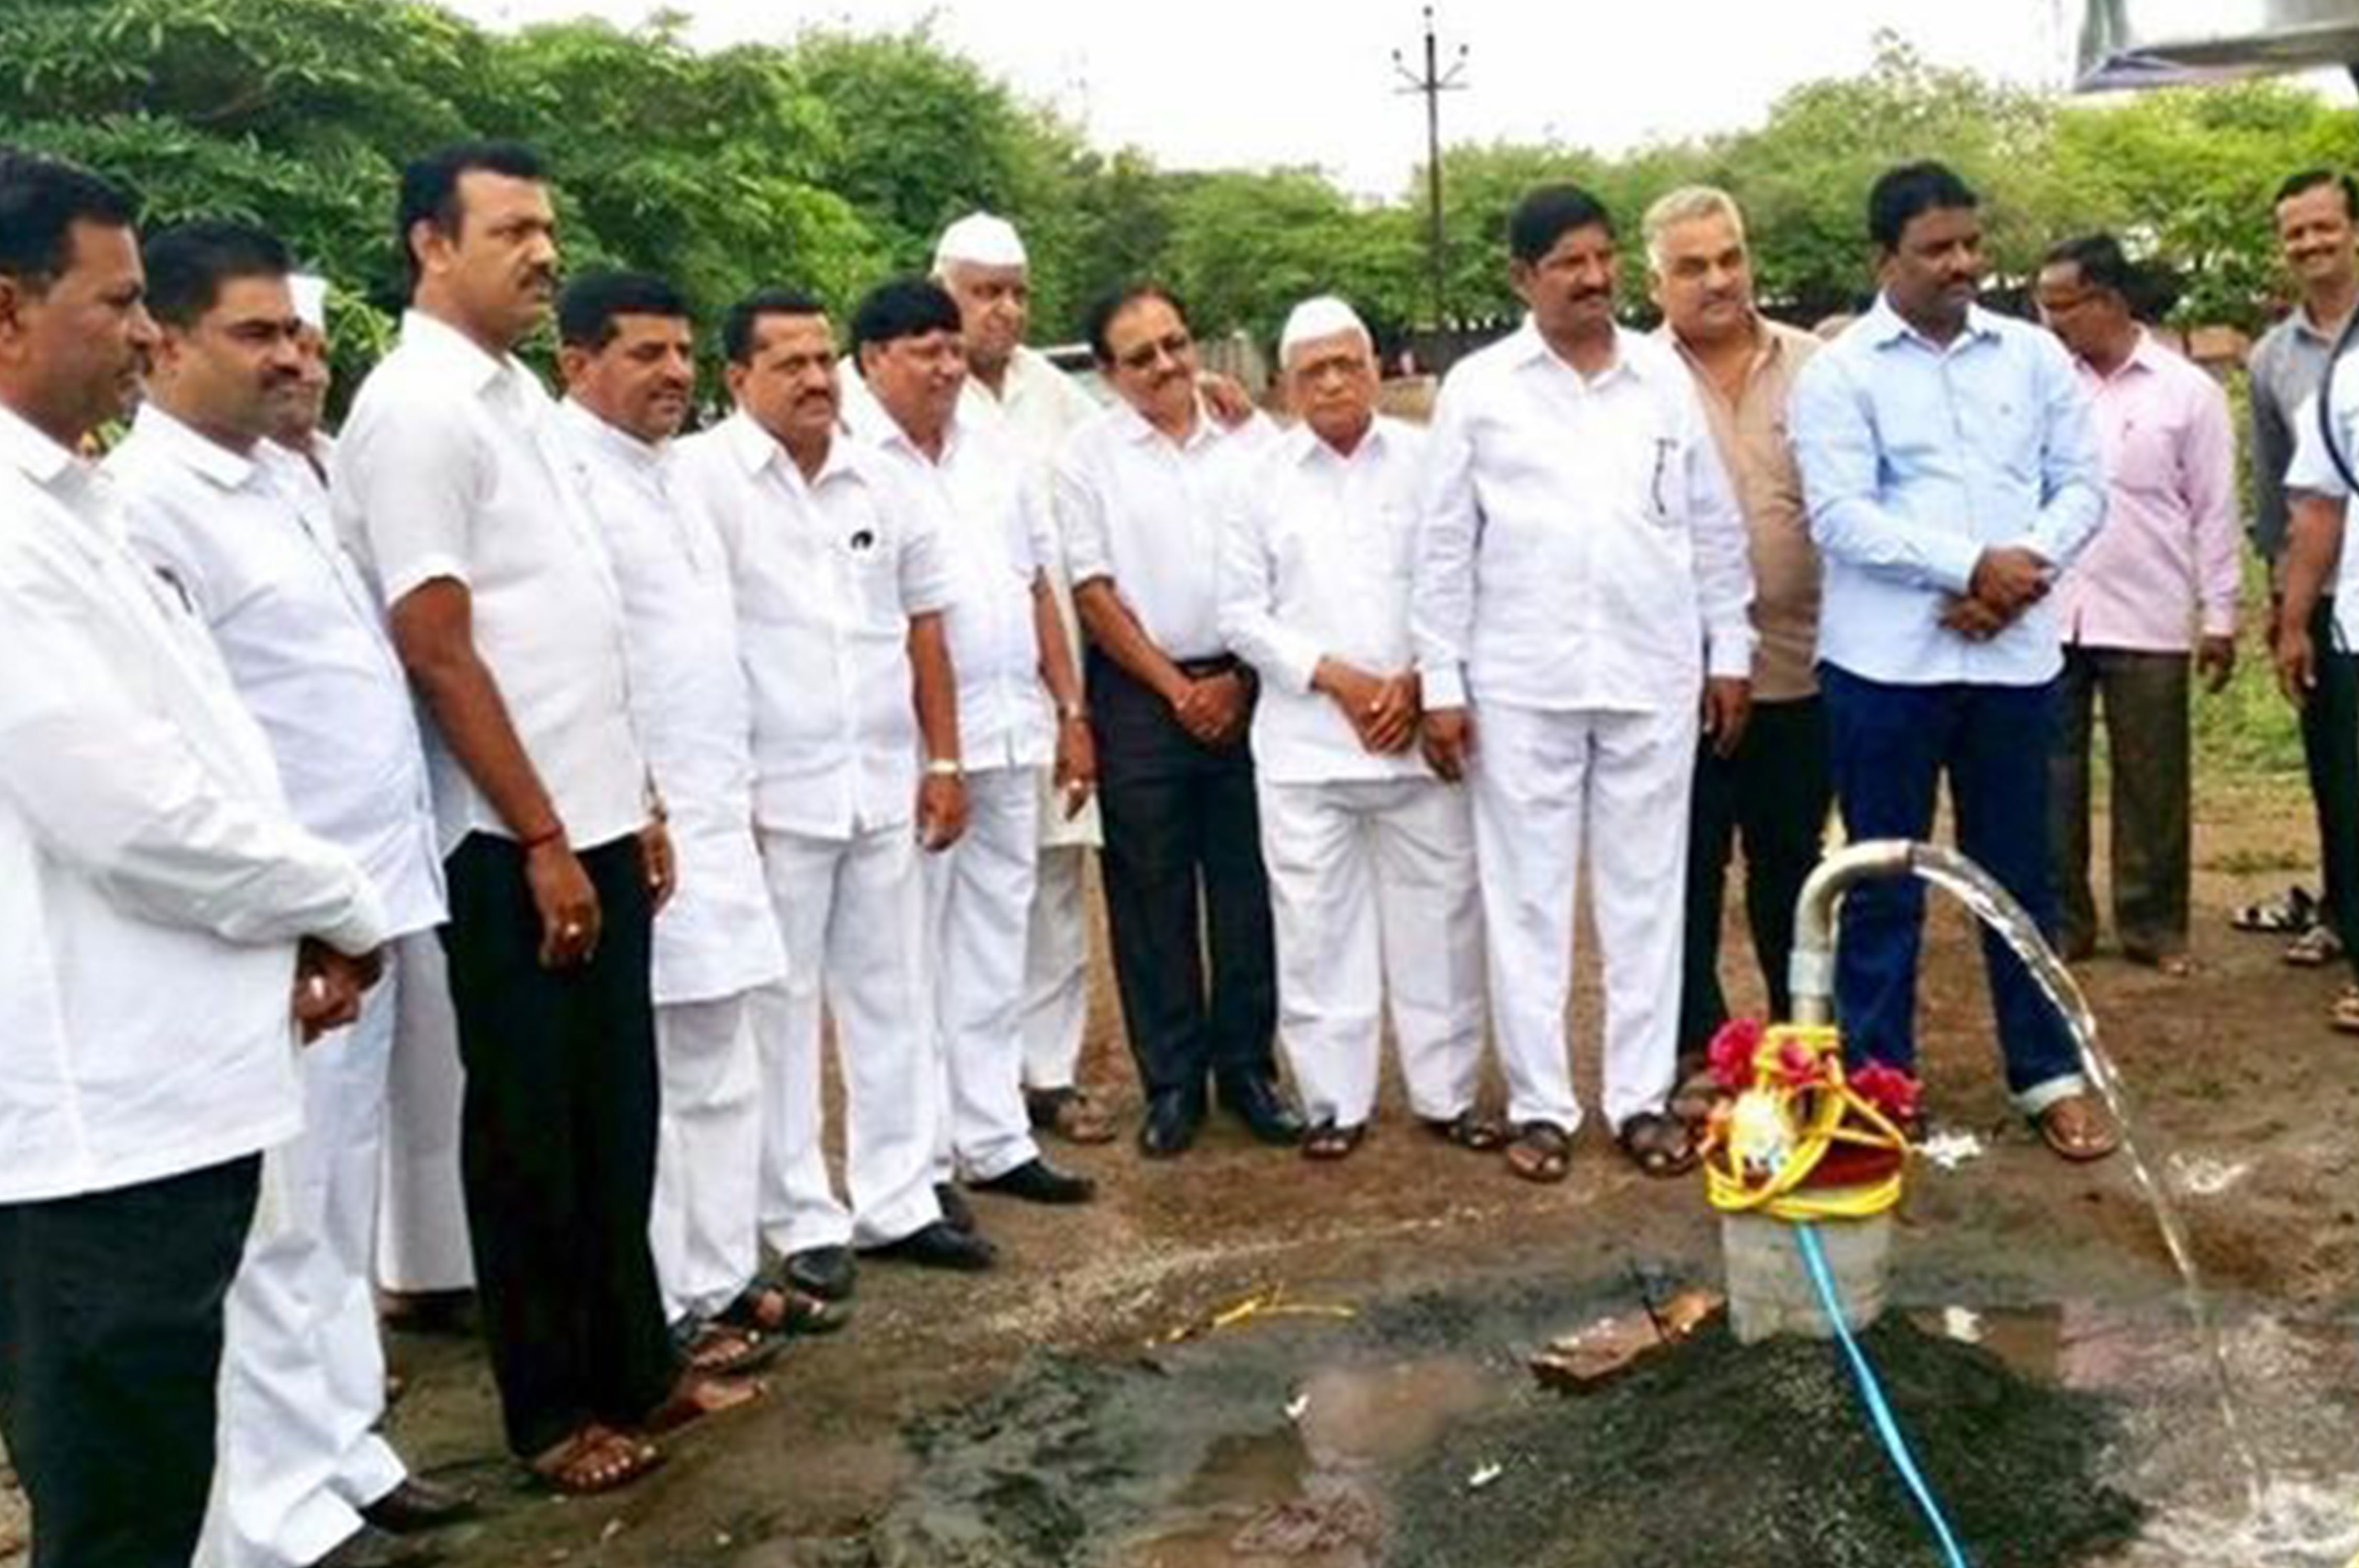 Bore-well equipment for the drinking water facility at New English School & Junior College, Wanewadi, Ta. Baramati